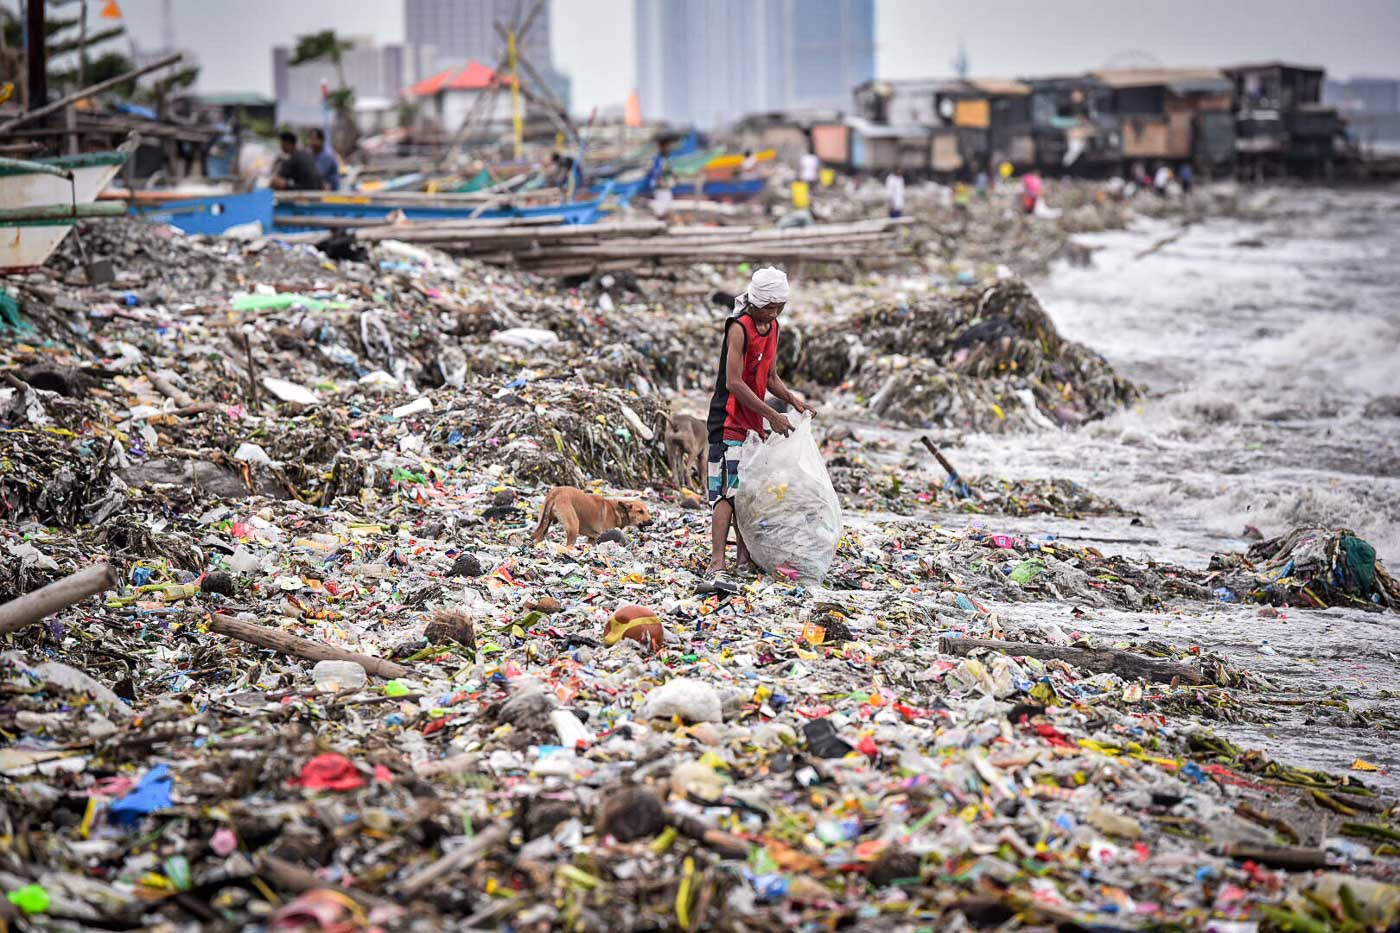 ENTERPRISING. A resident of Baseco, Manila, salvages recyclables from the trash washed ashore by wave surges from Manila Bay. Photo by Alecs Ongcal/Rappler